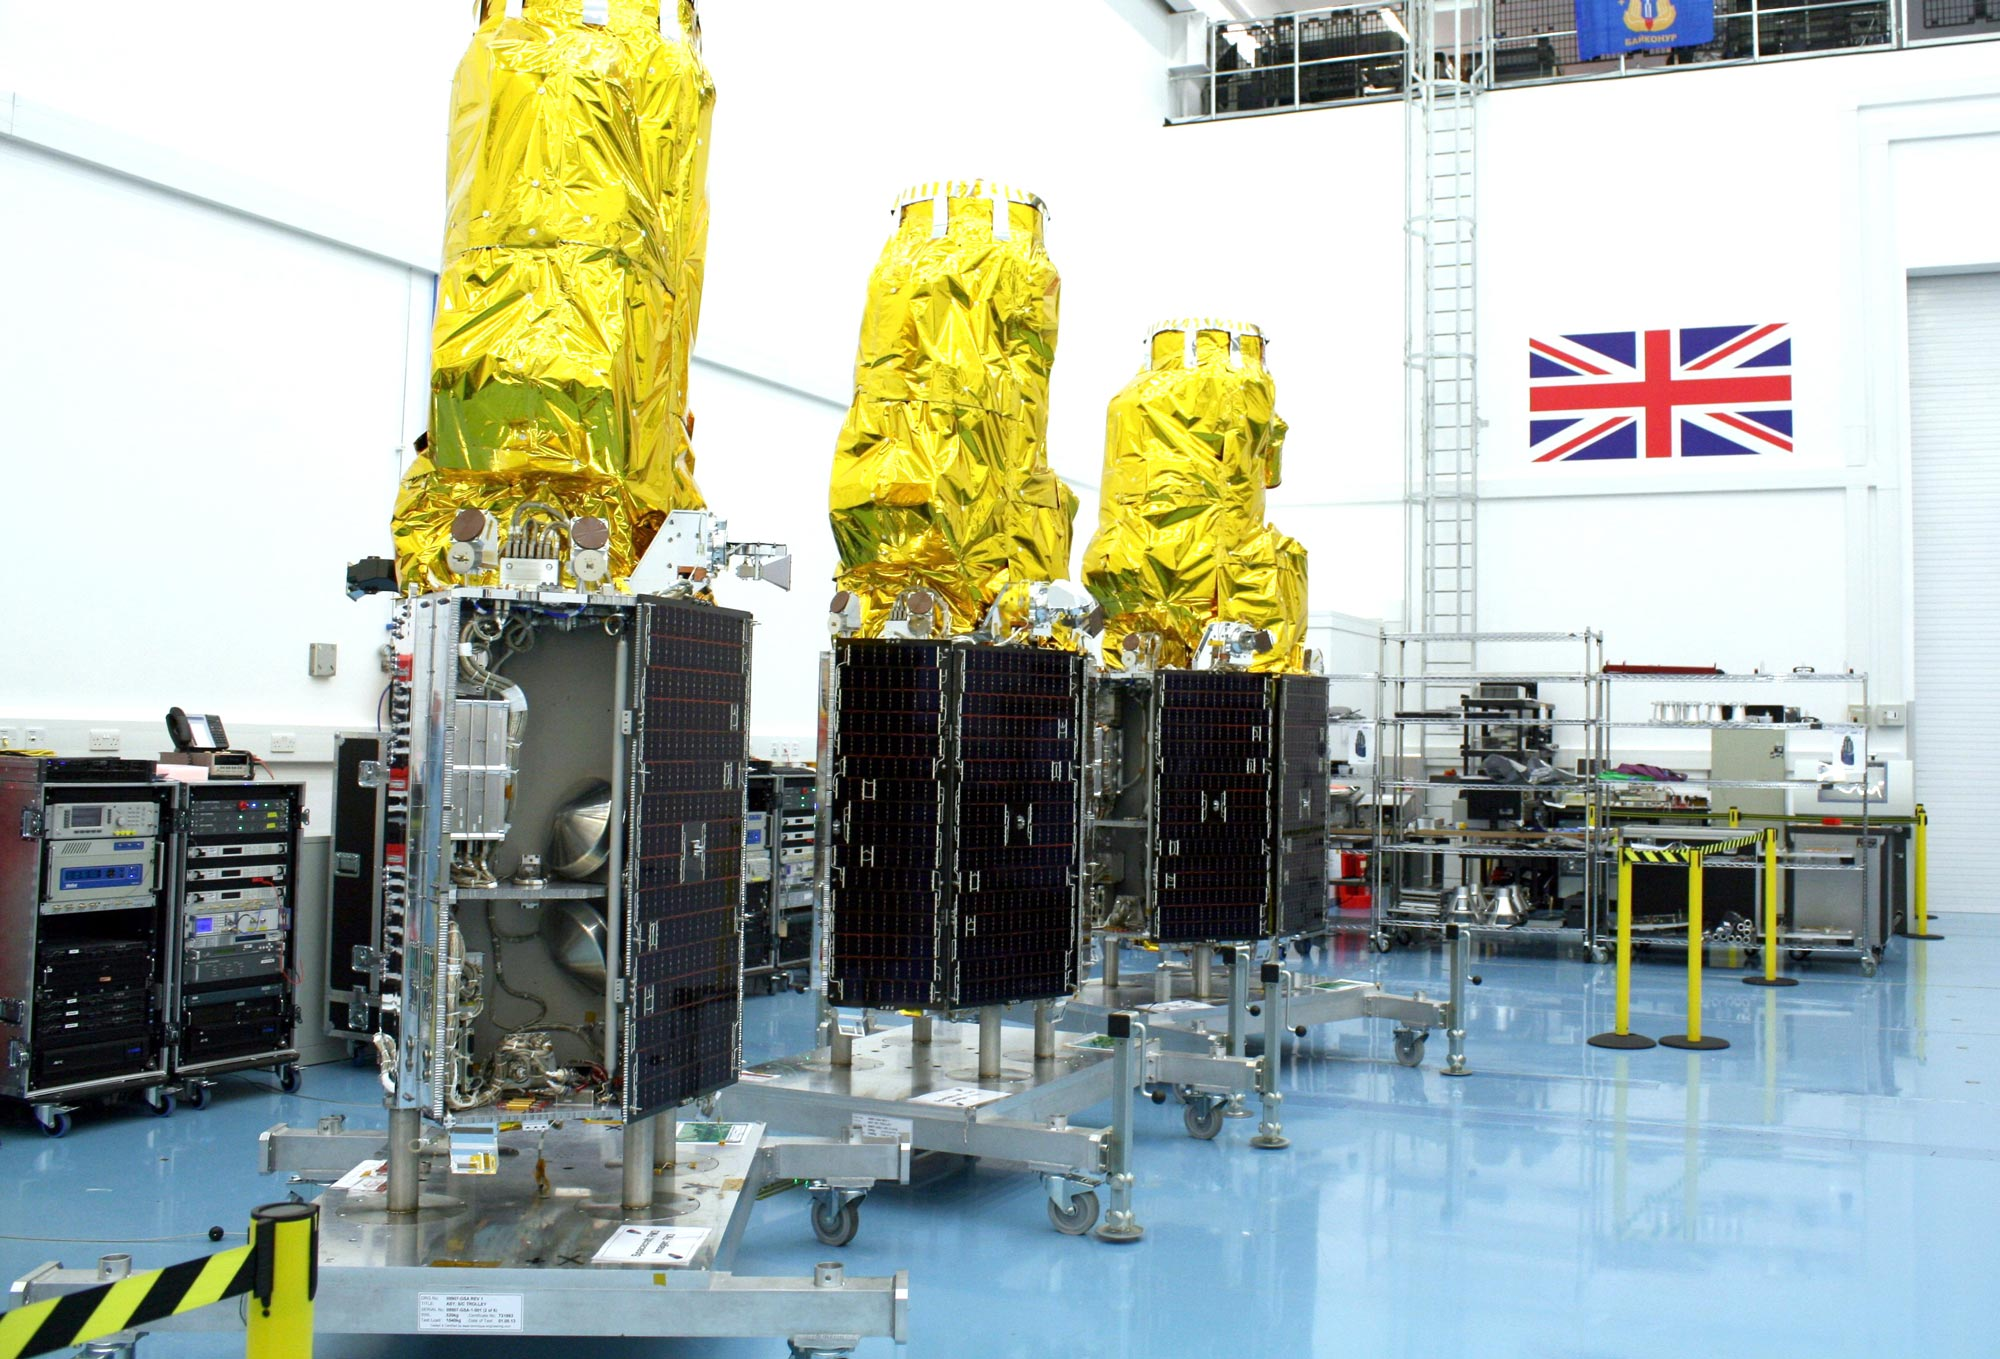 The three DMC3 satellites in SSTL's cleanroom (Guildford, UK) prior to shipping to launch site.